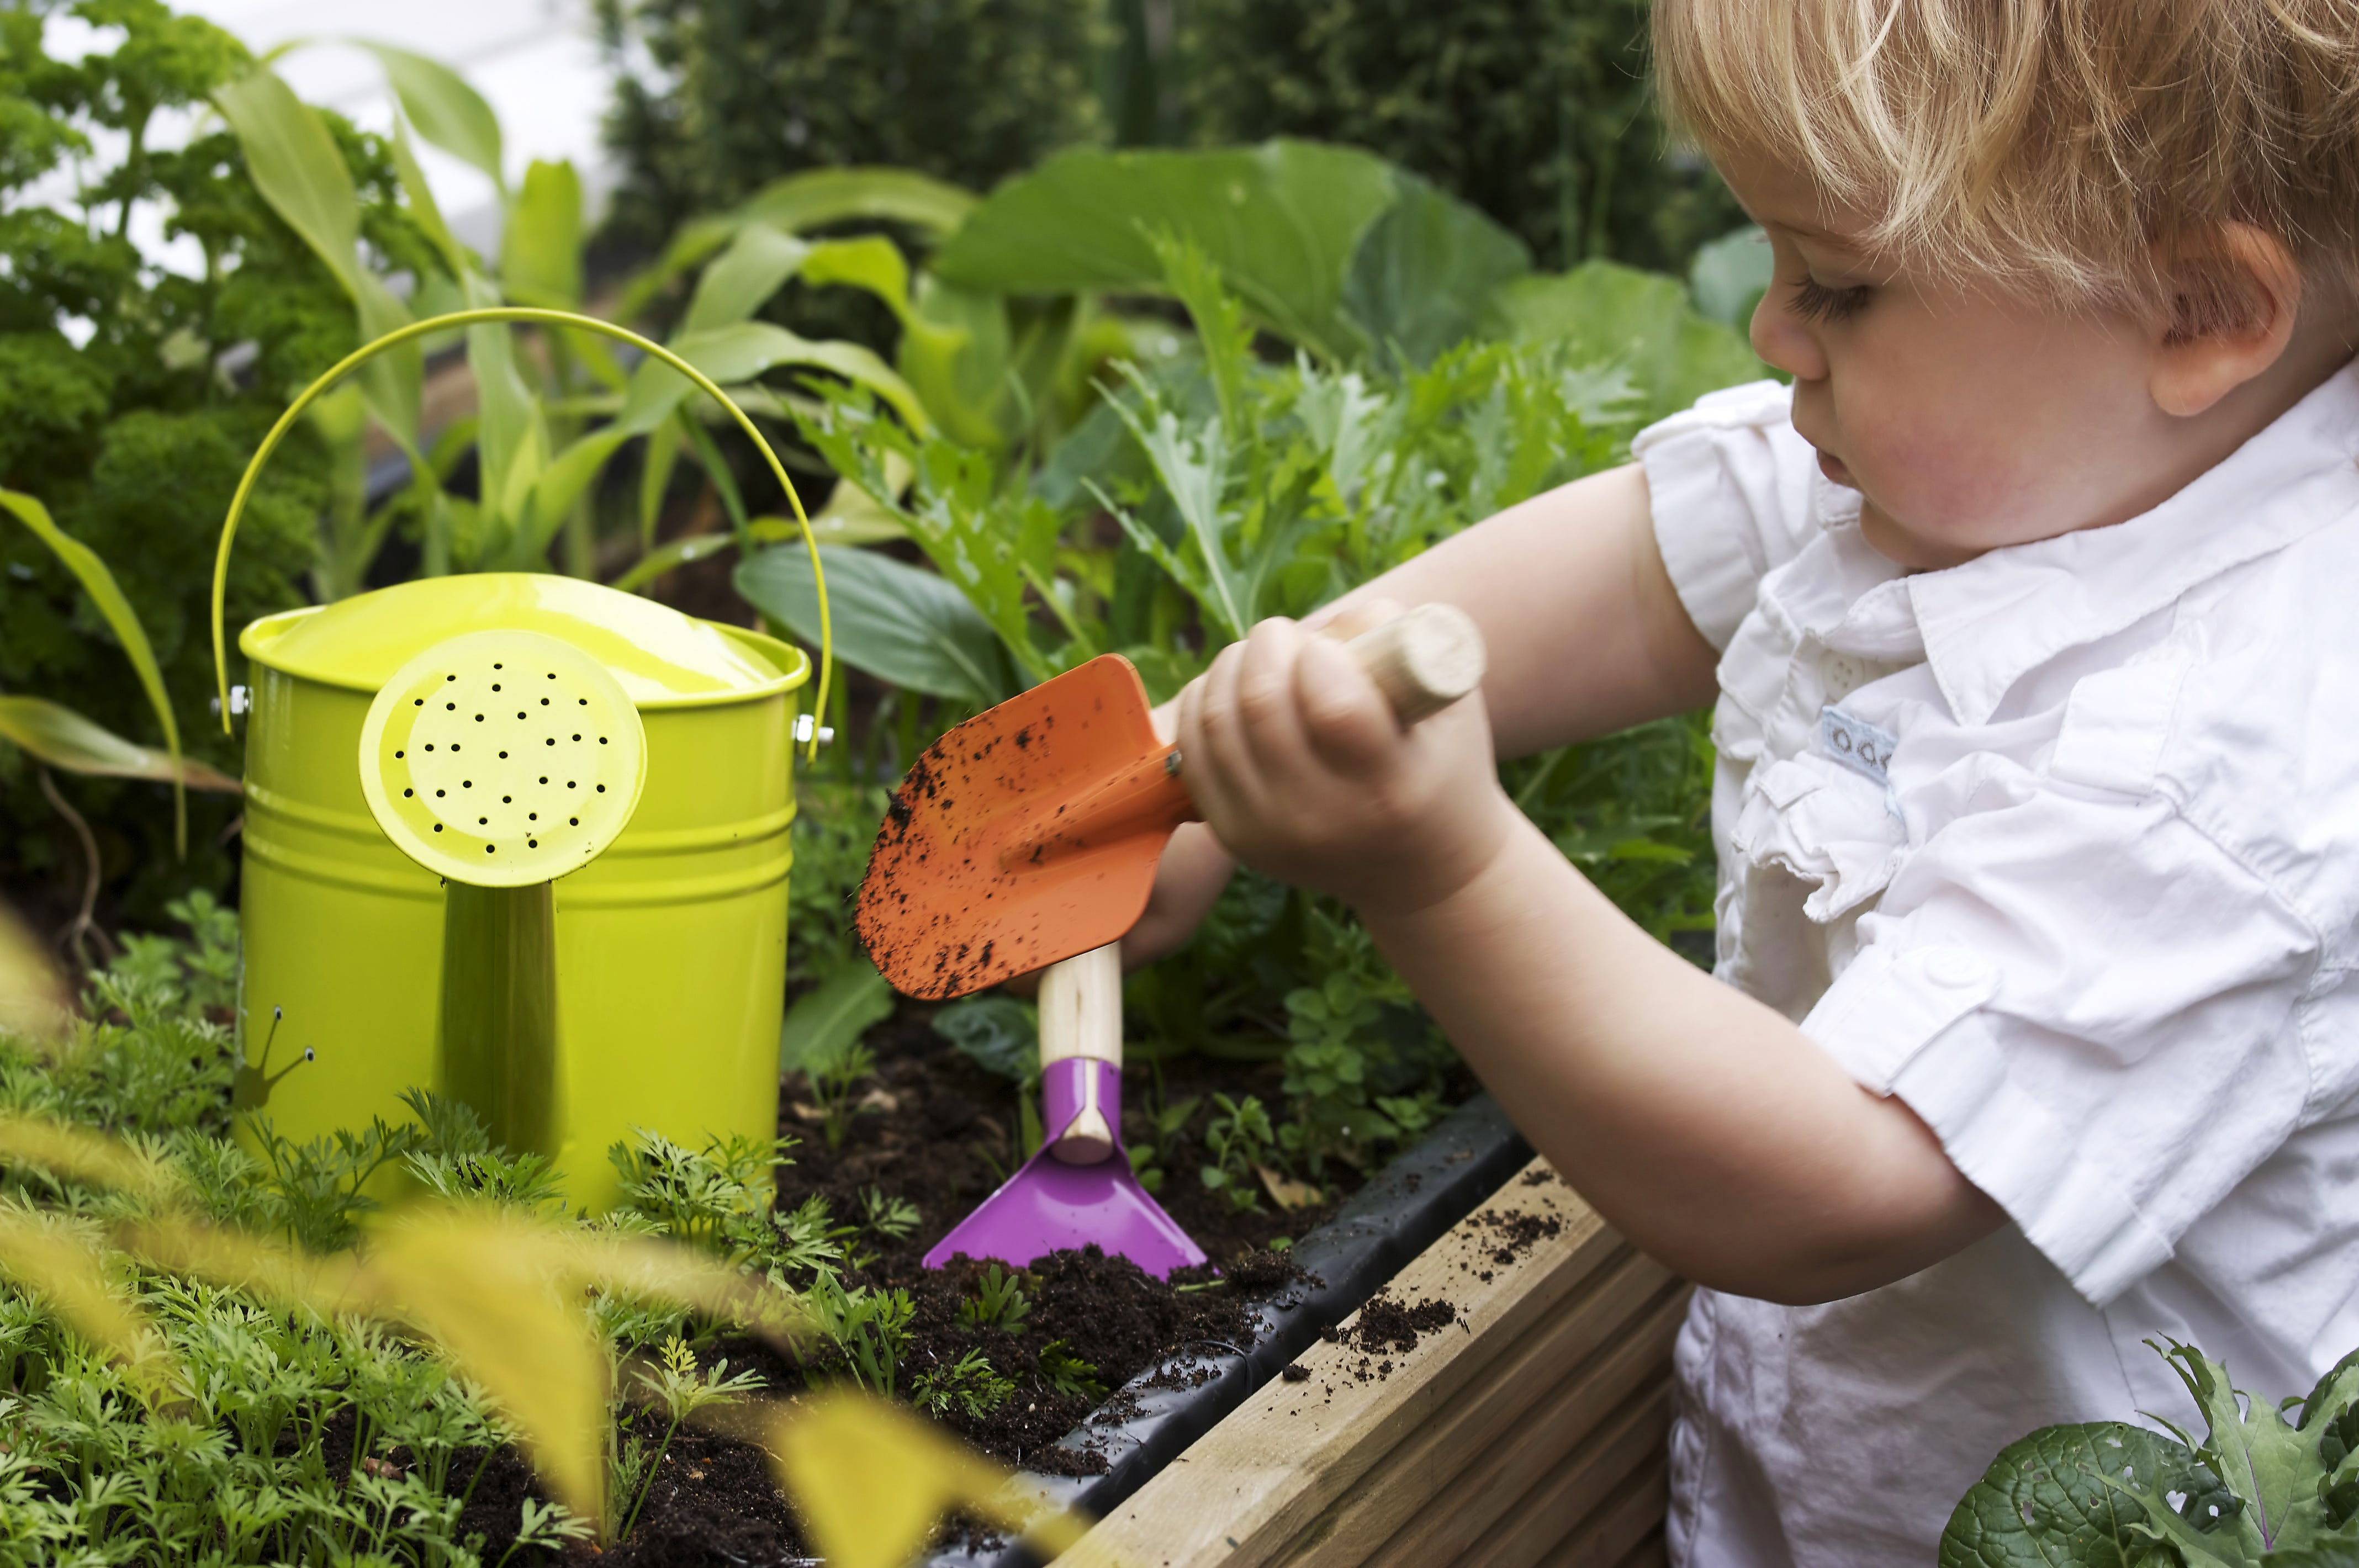 Guide to gardening with little ones